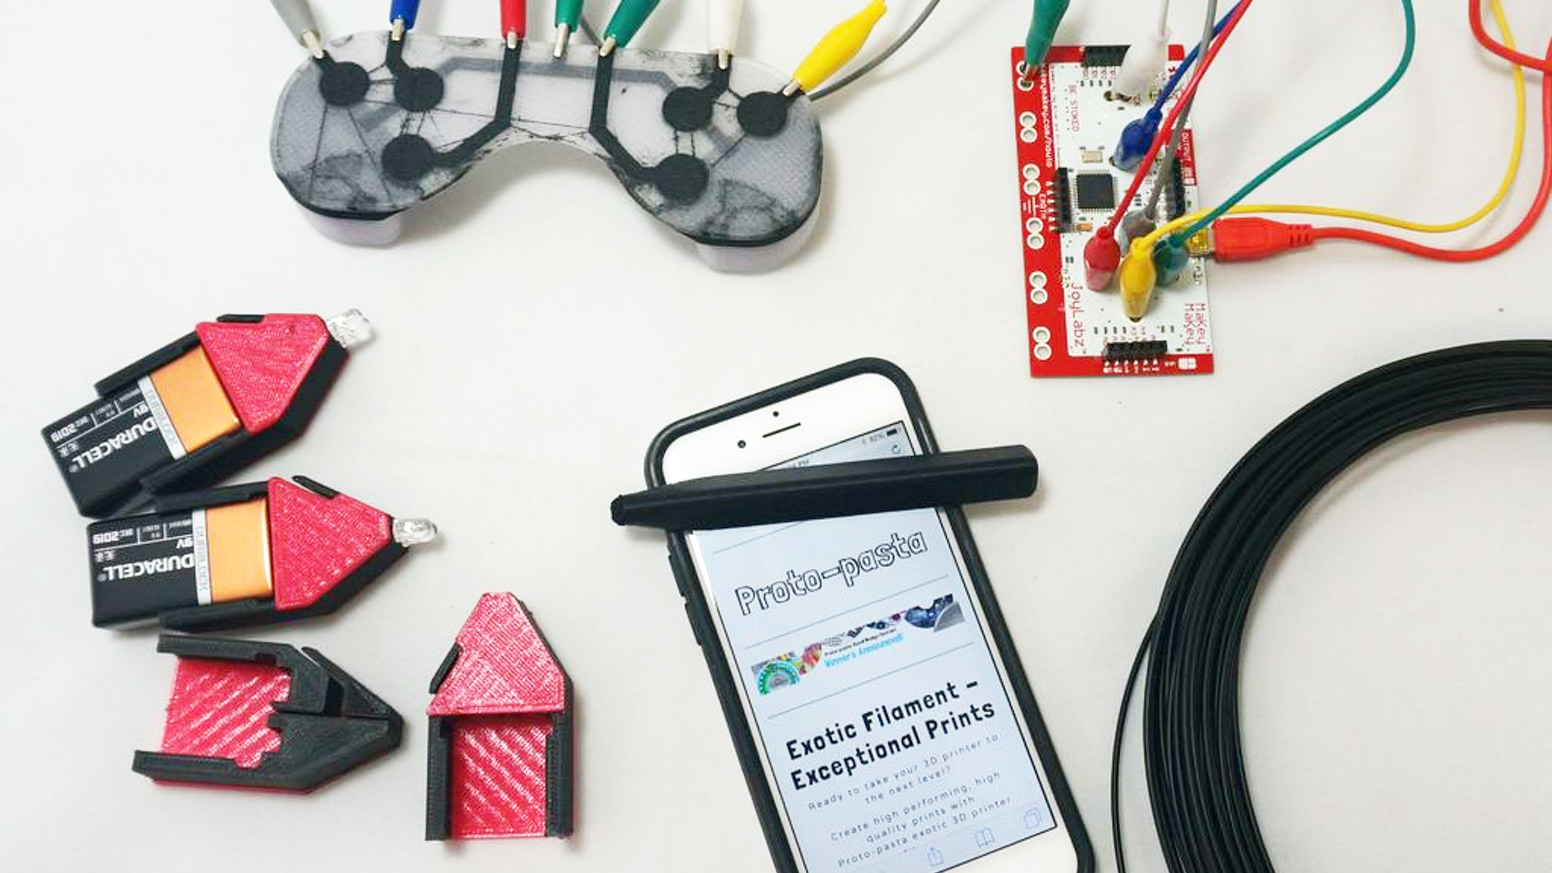 Electrically Conductive PLA 3D Printer Filament by ProtoPlant INC ...